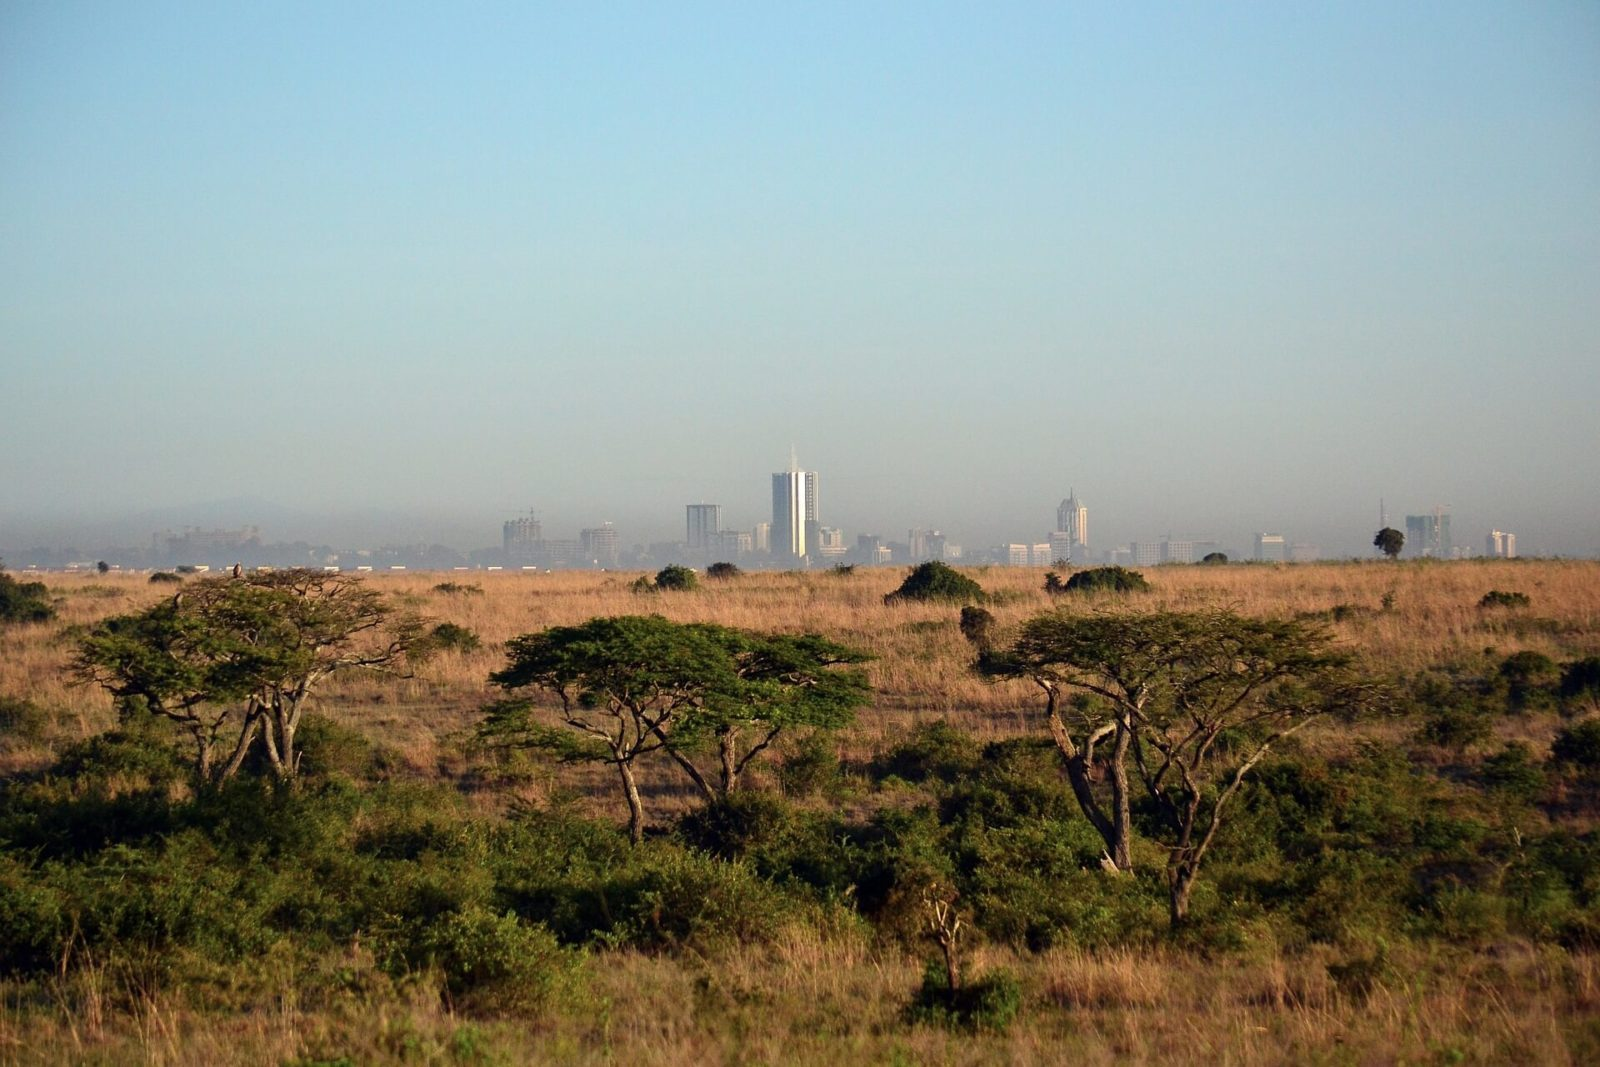 Nairobi National Park - Skyline